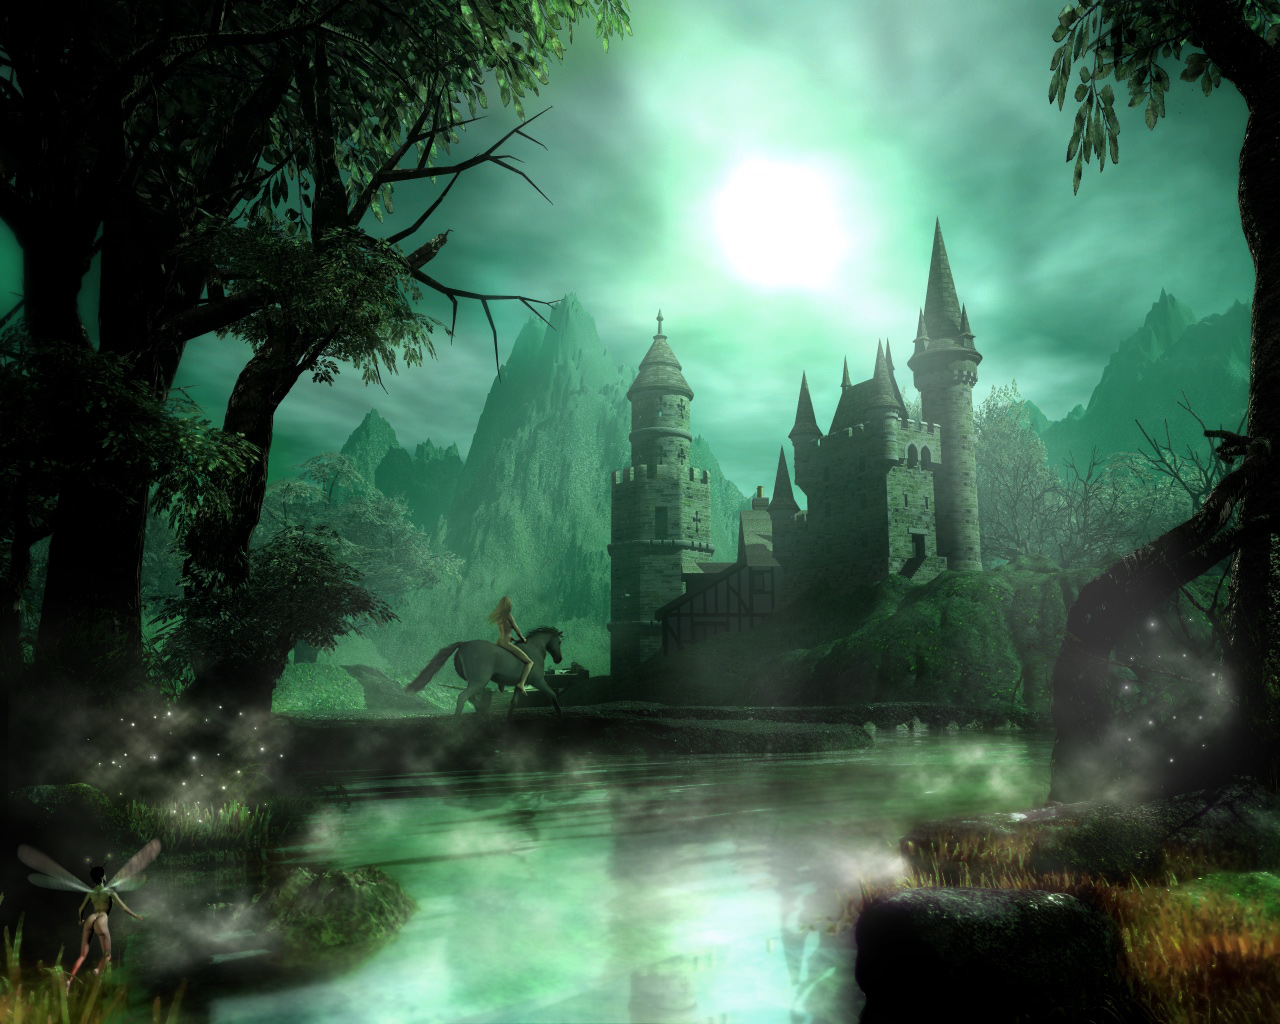 Forest, castle and a naked girl on a horse - a background for your desktop, erotic, fantasy, fantasy